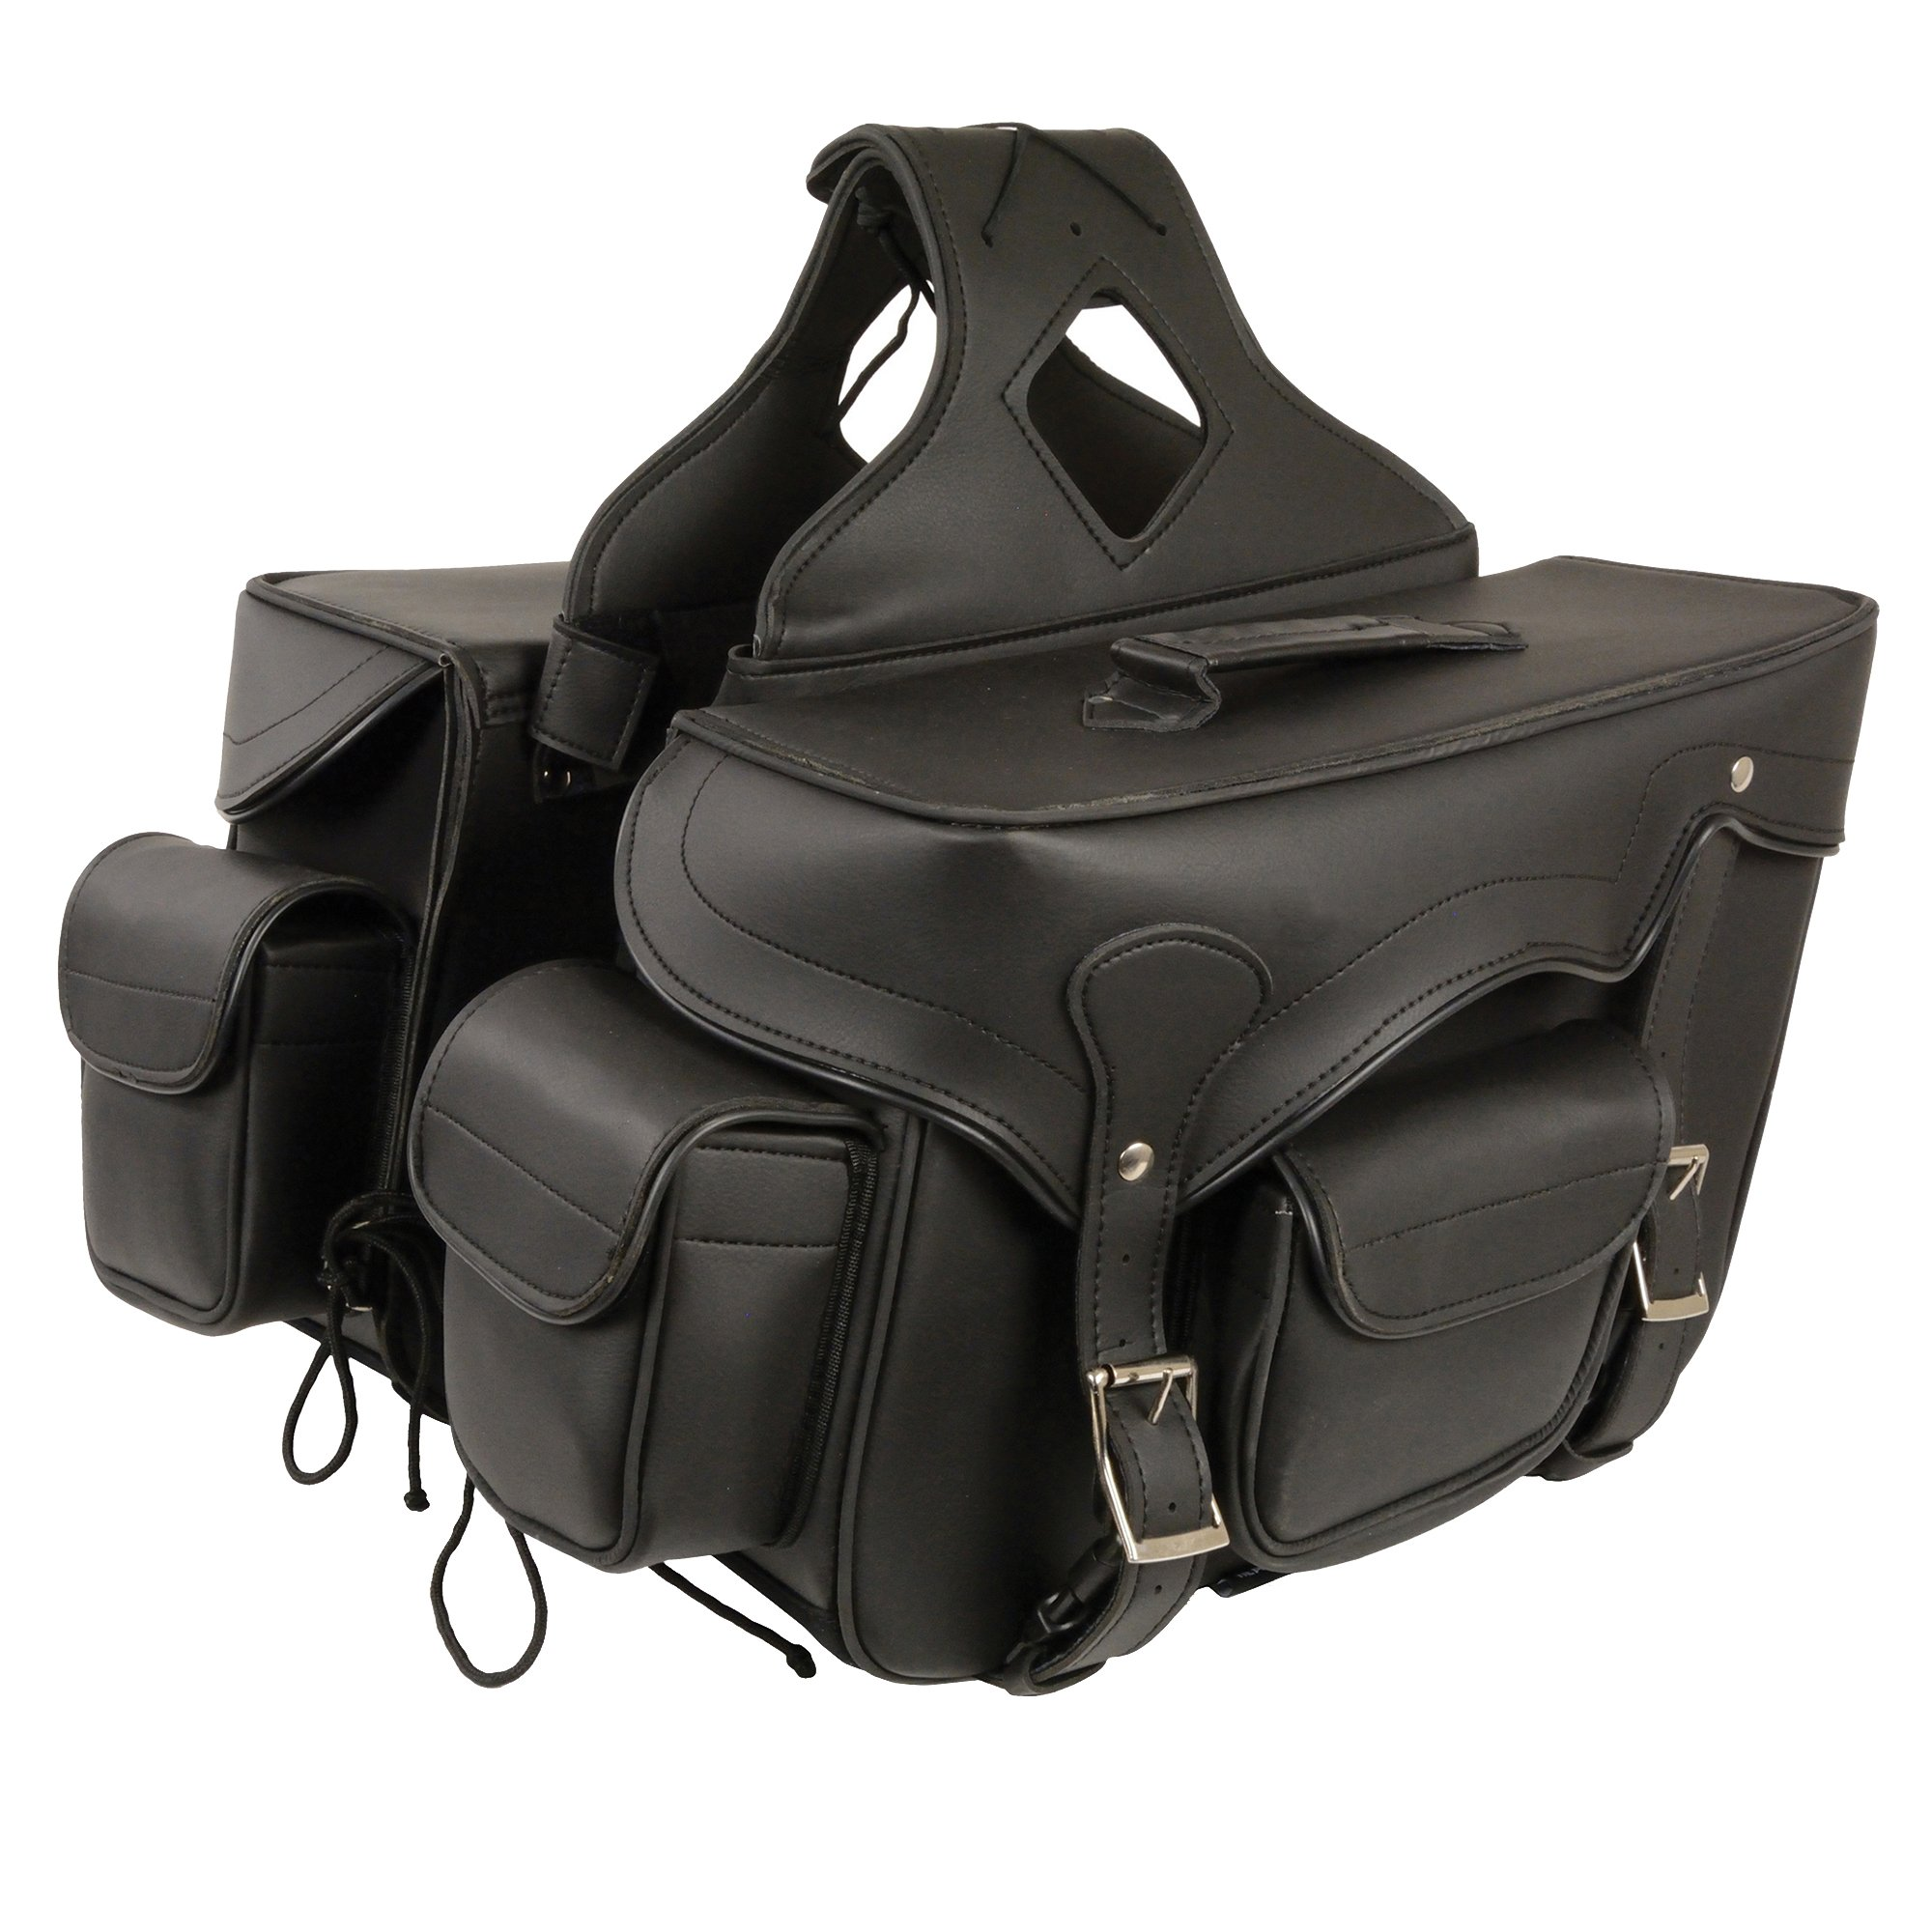 HelmetUSA-Zip-Off Double Front Pocket PVC Throw Over Saddle Bag w/ Reflective Piping by HelmetUSA